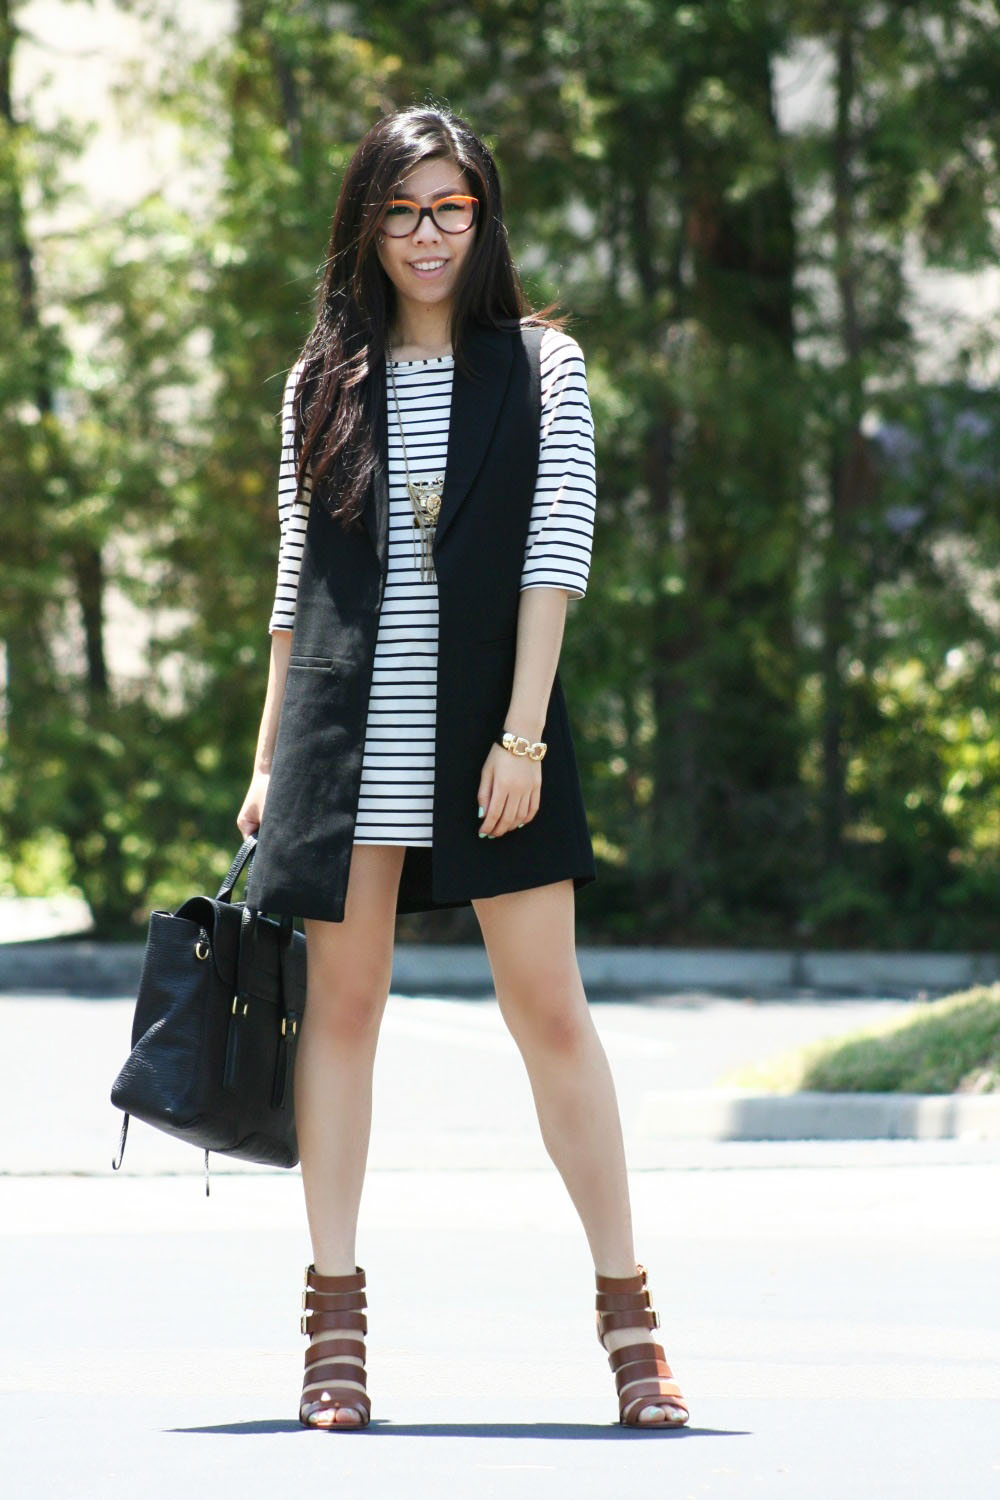 how to look good in a striped dress